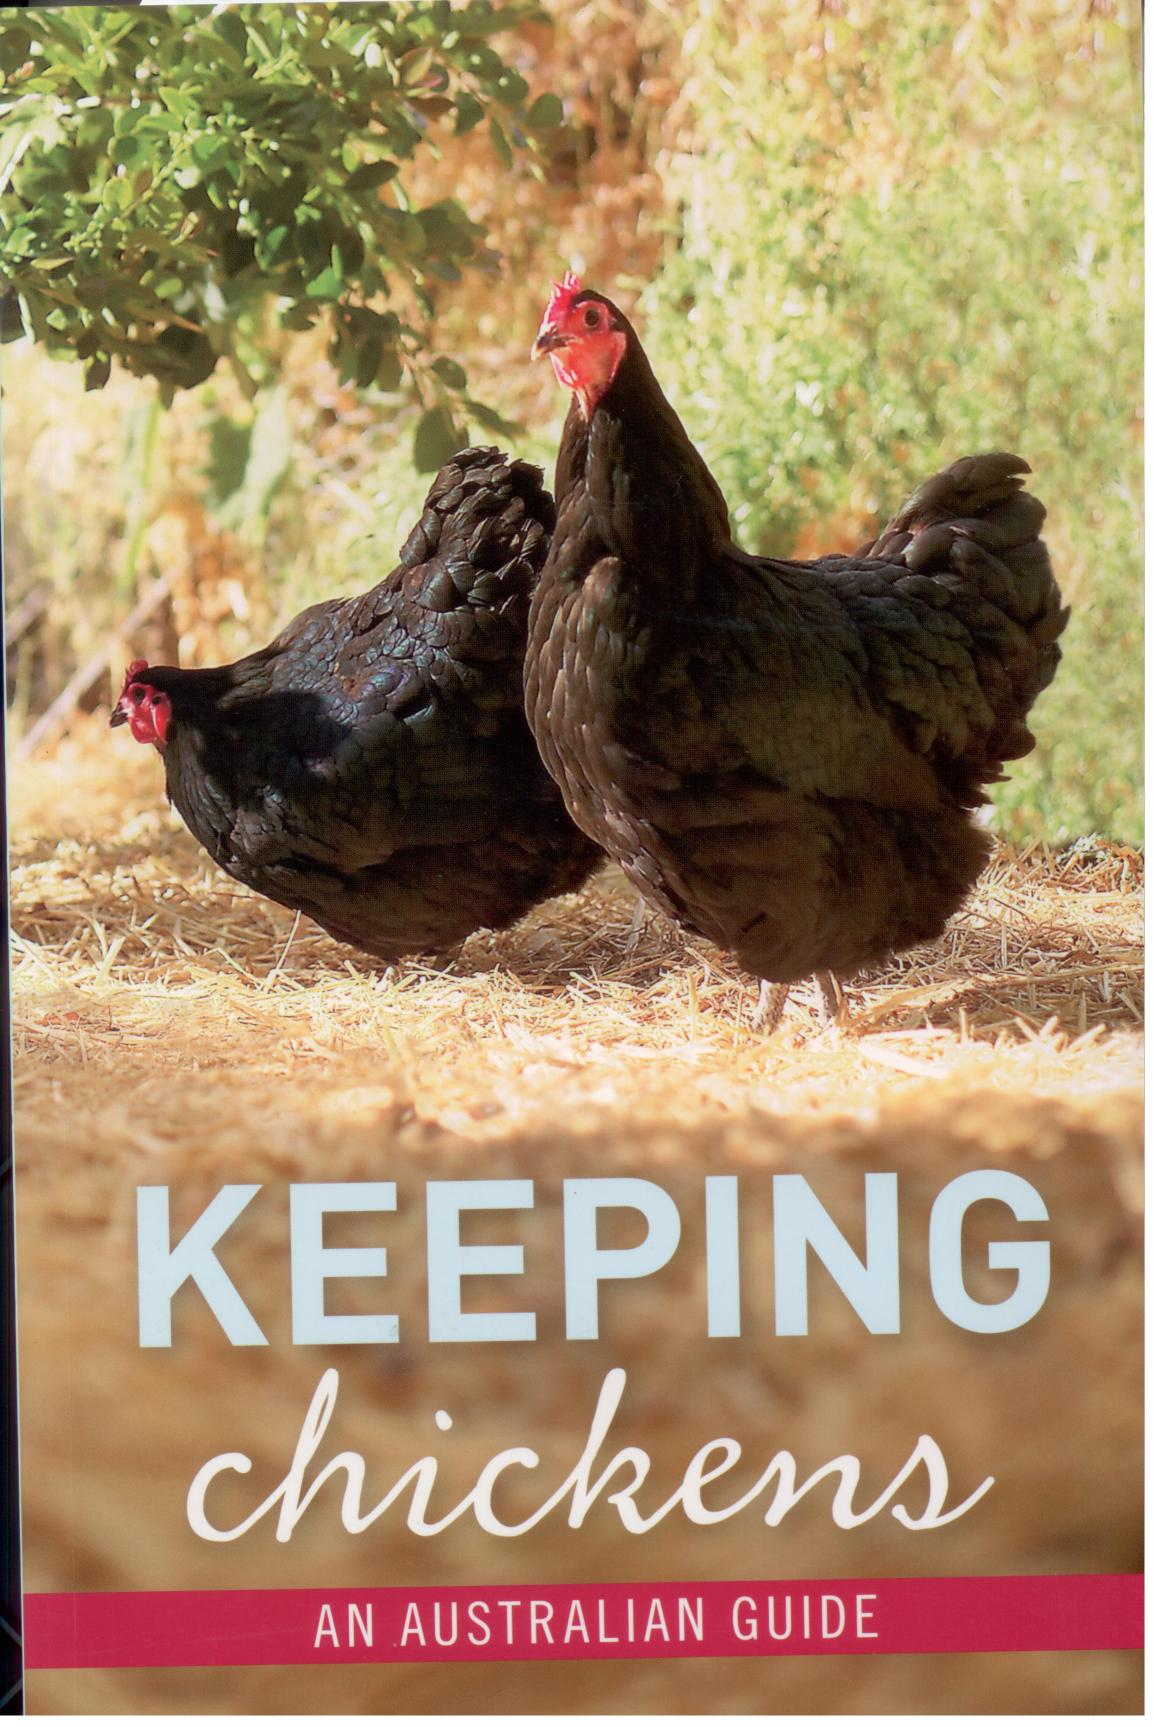 Book: Keeping Chickens: An Australian Guide